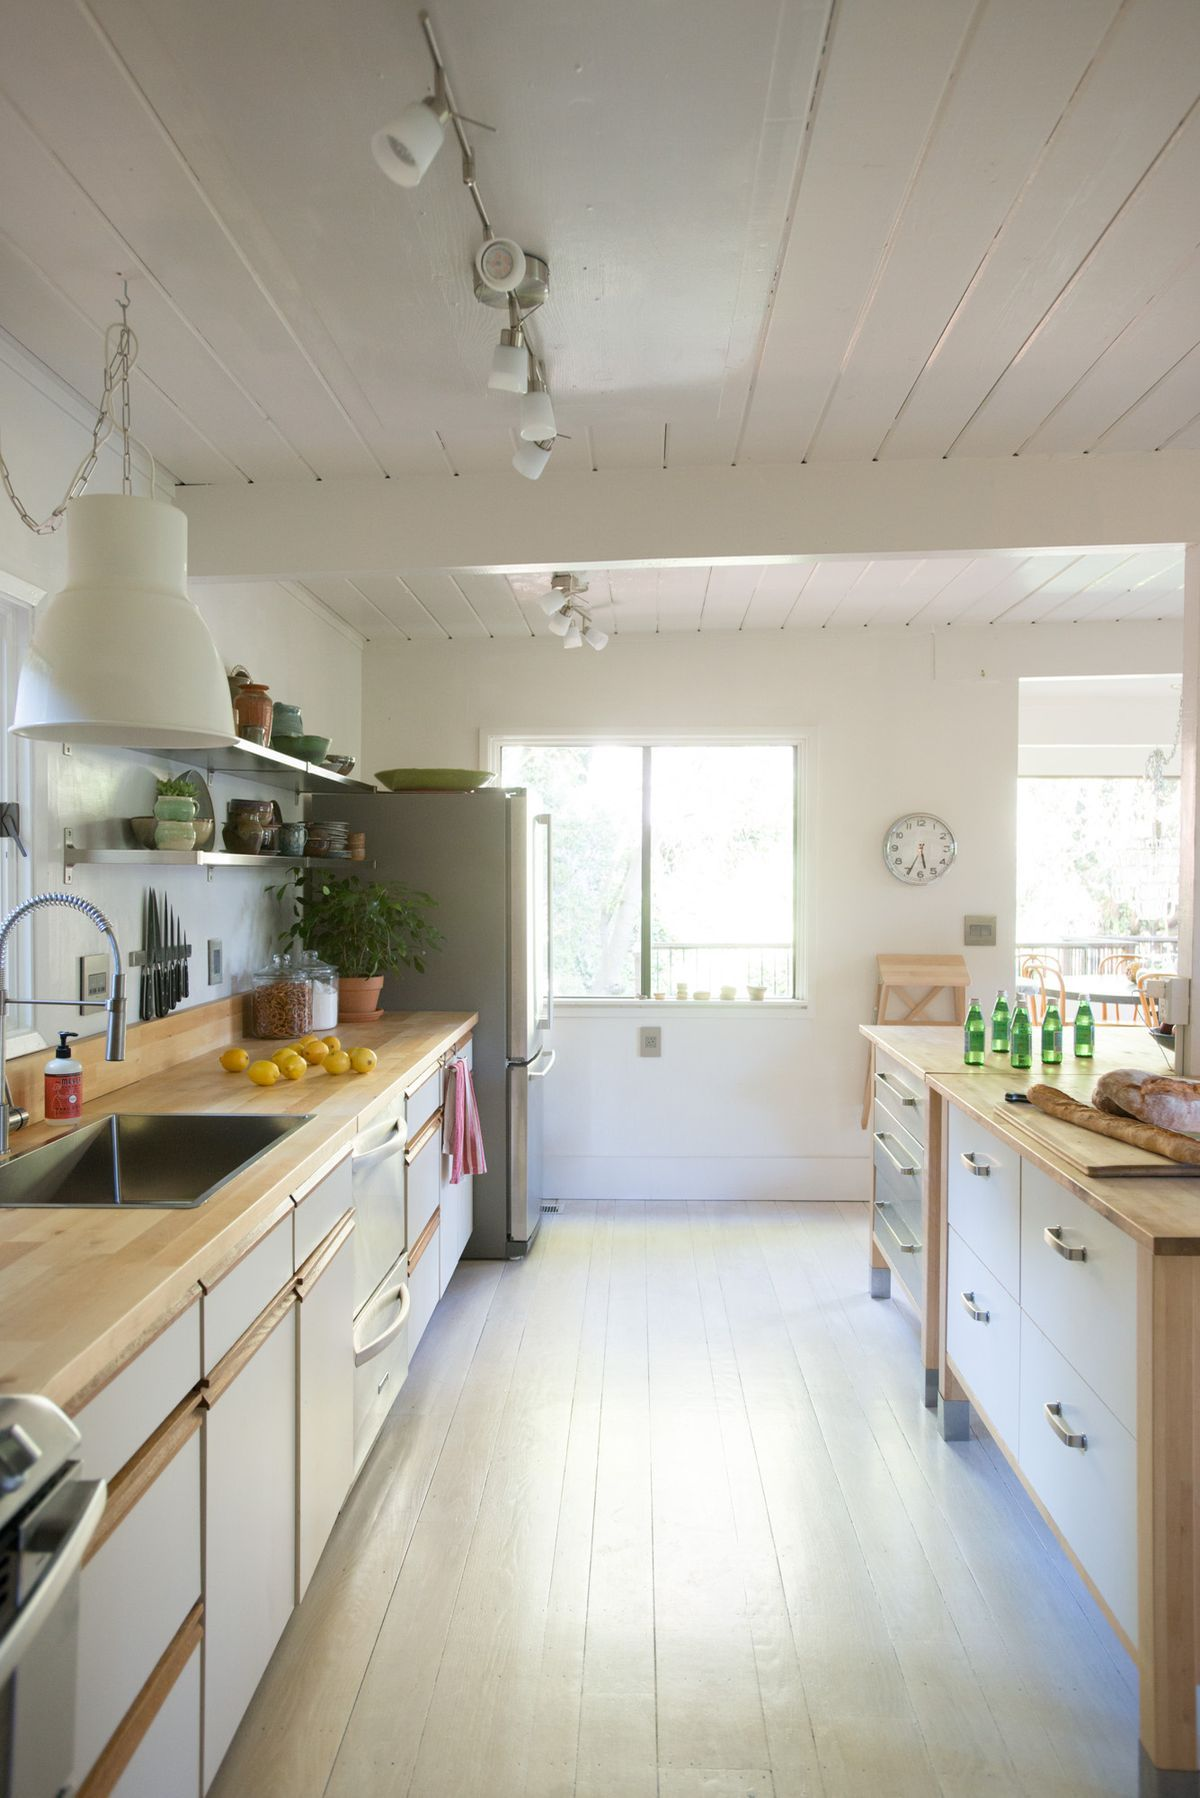 How to Have a New Kitchen On